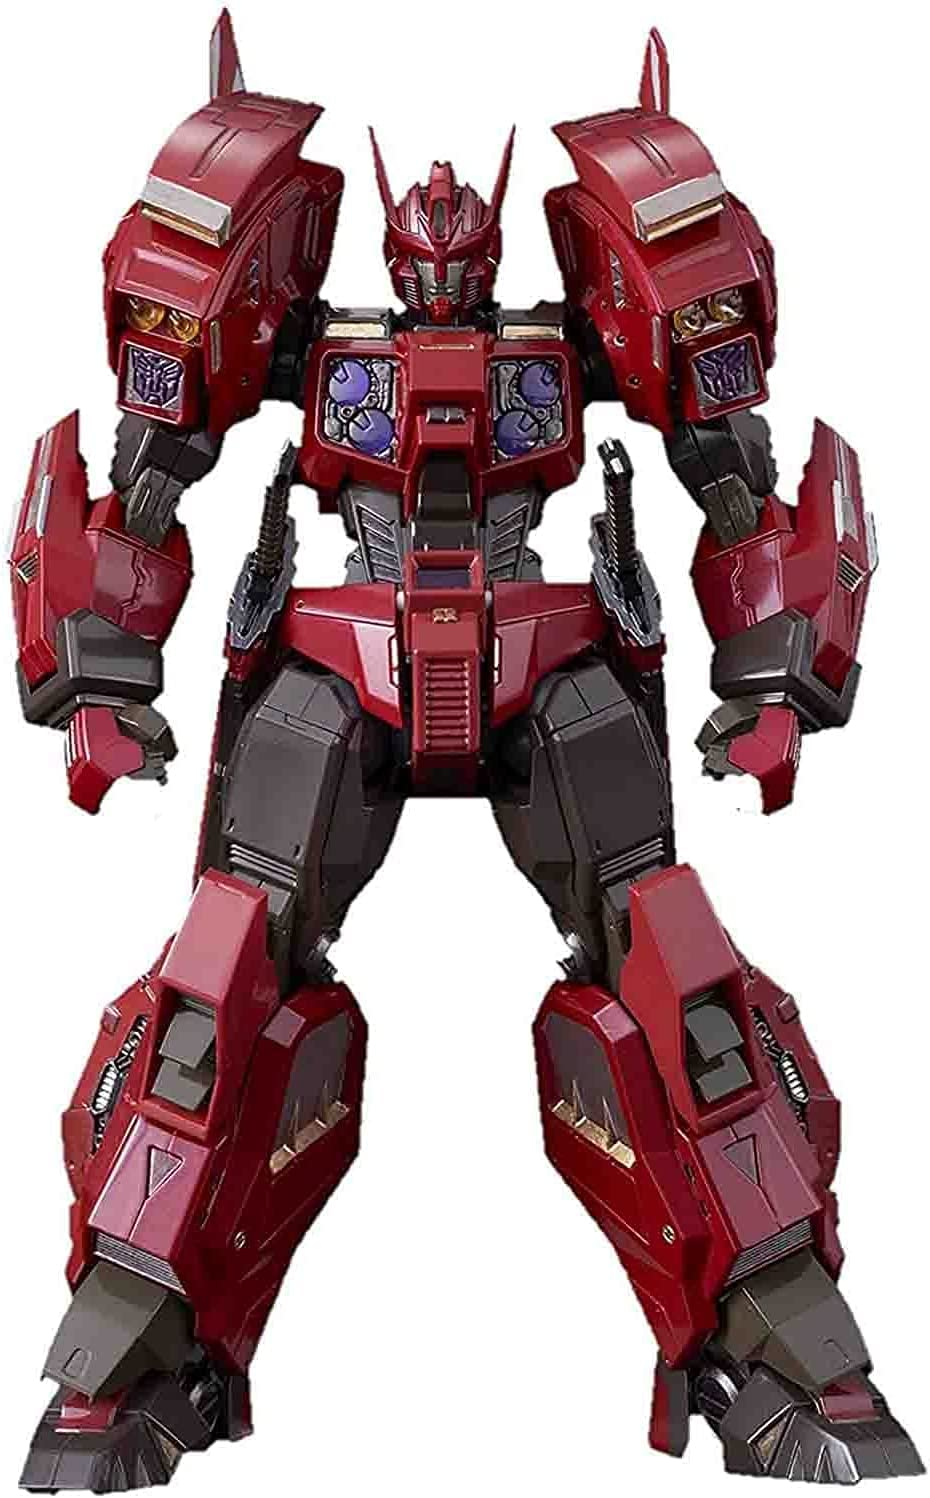 RSVPhandcrafted Trǎnsformérs Robot Toy The Our shop most popular KO Height Tr 100% quality warranty! of